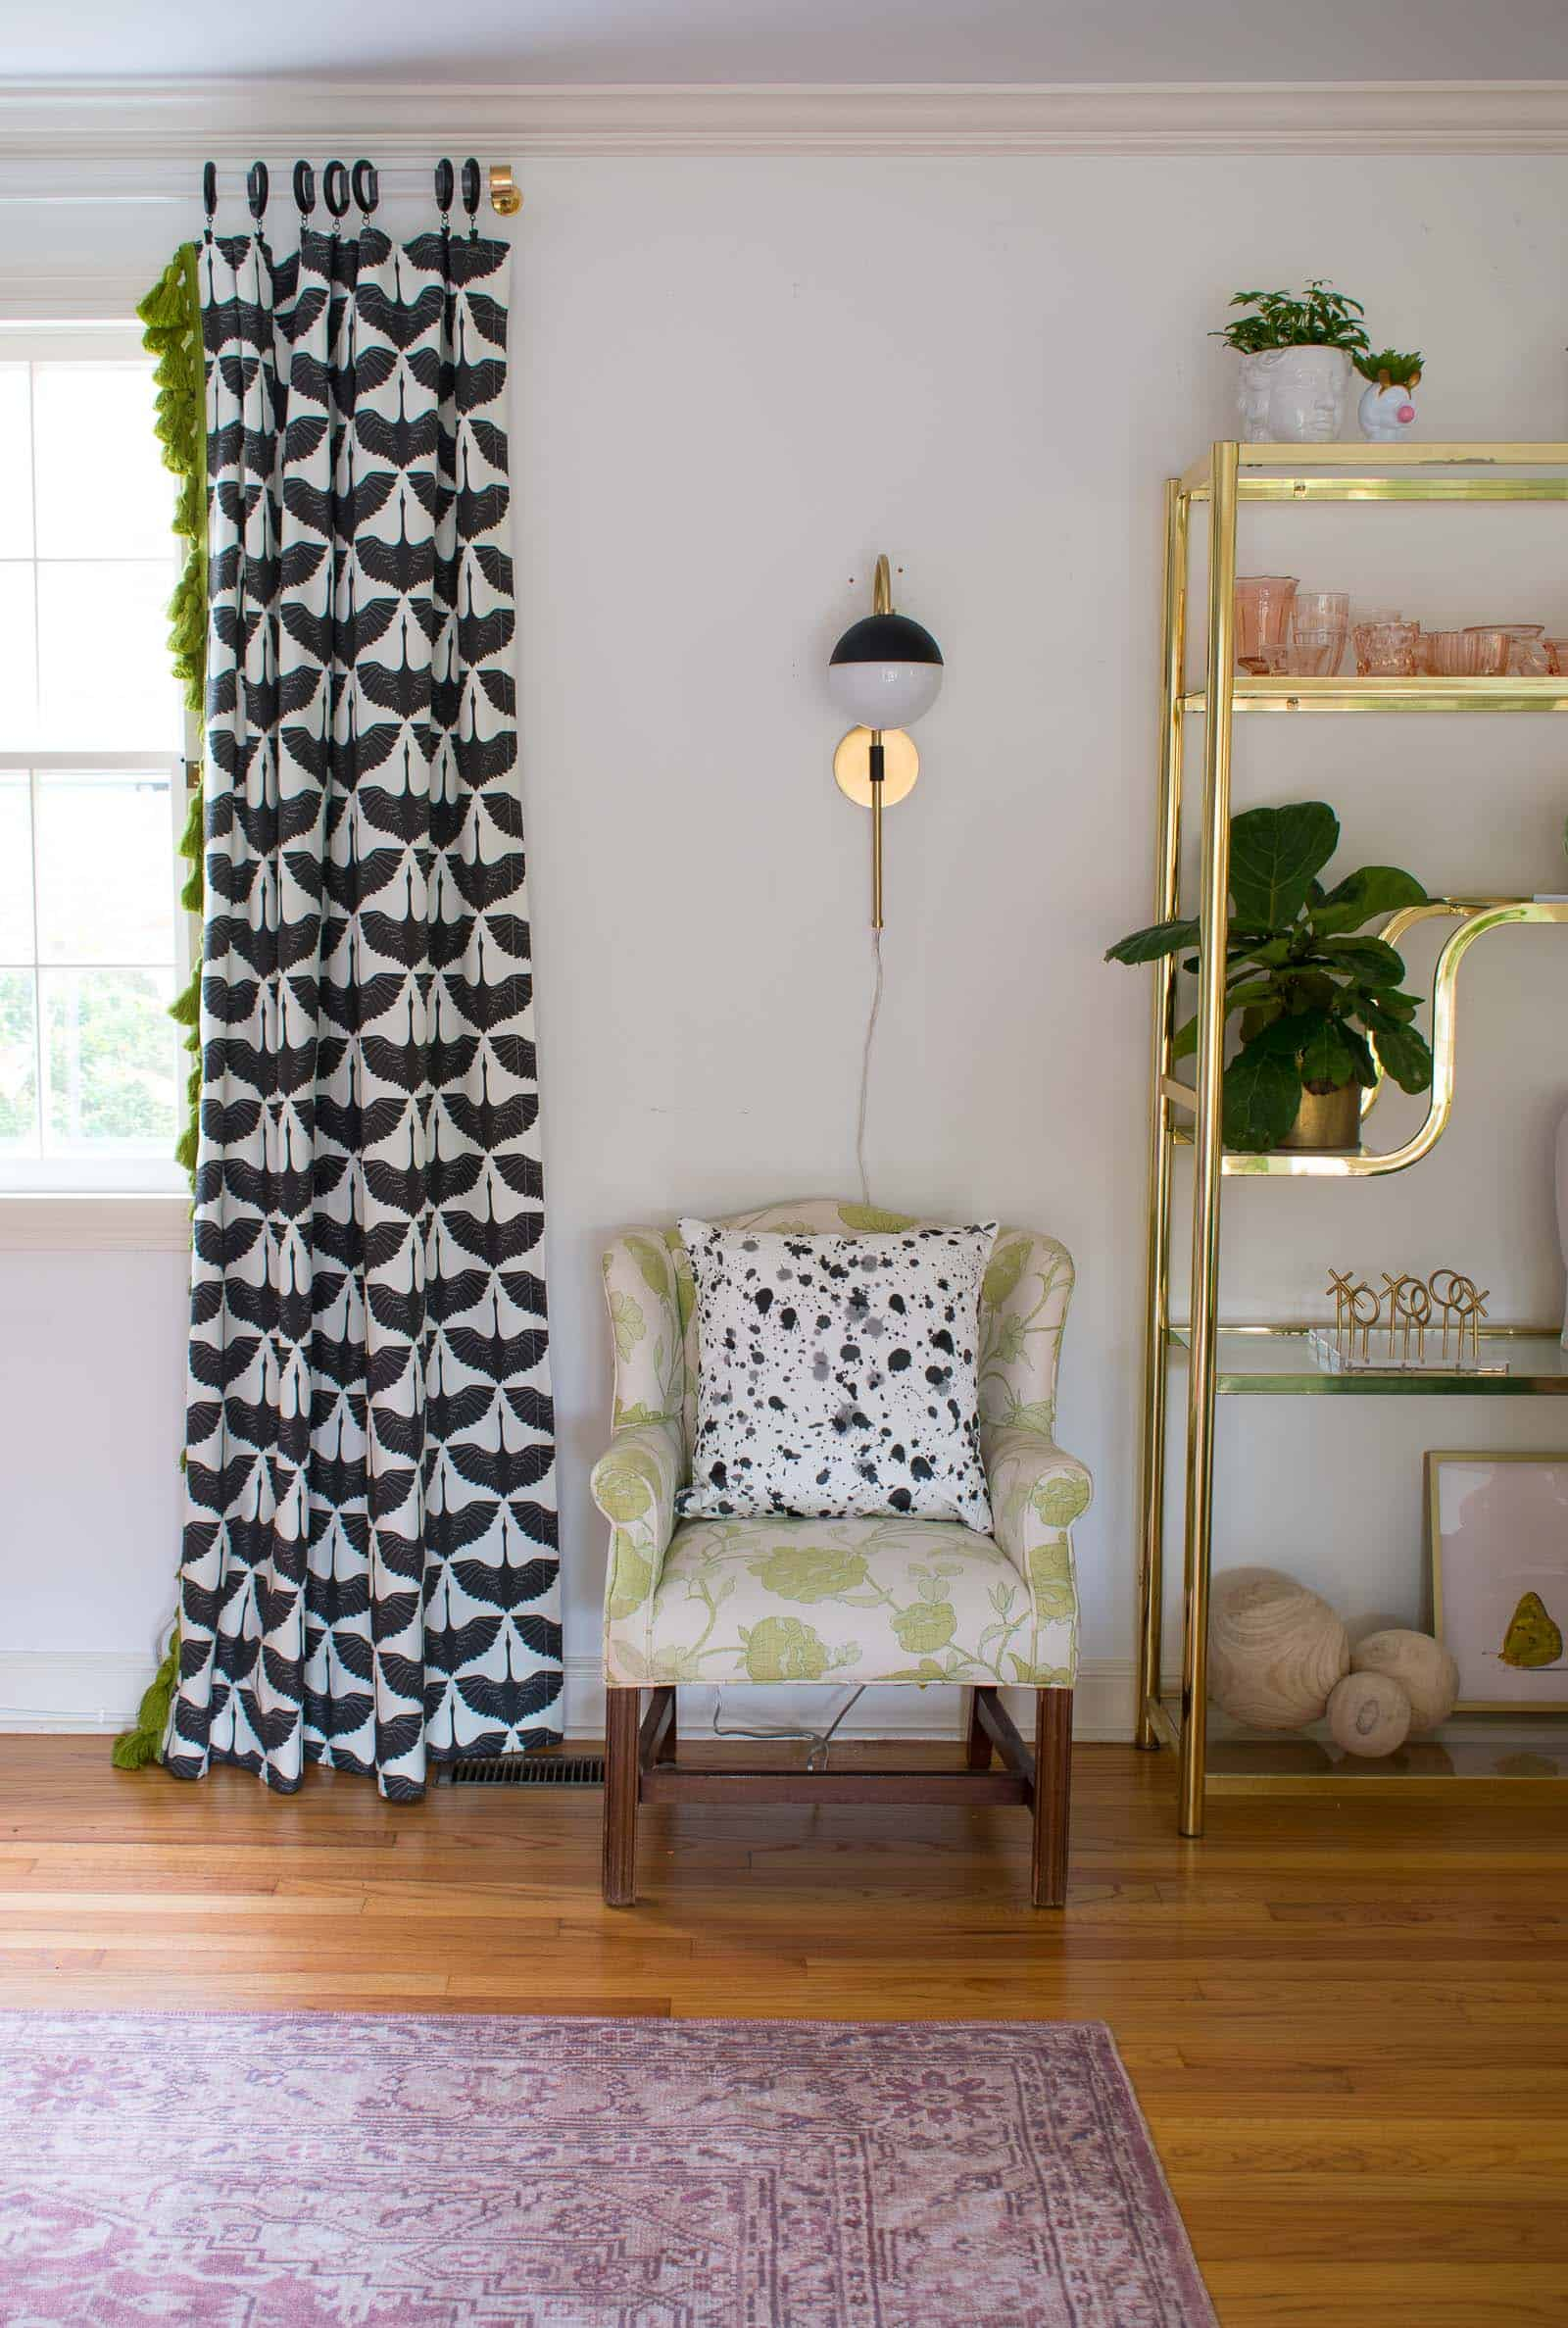 sconces over the armchairs